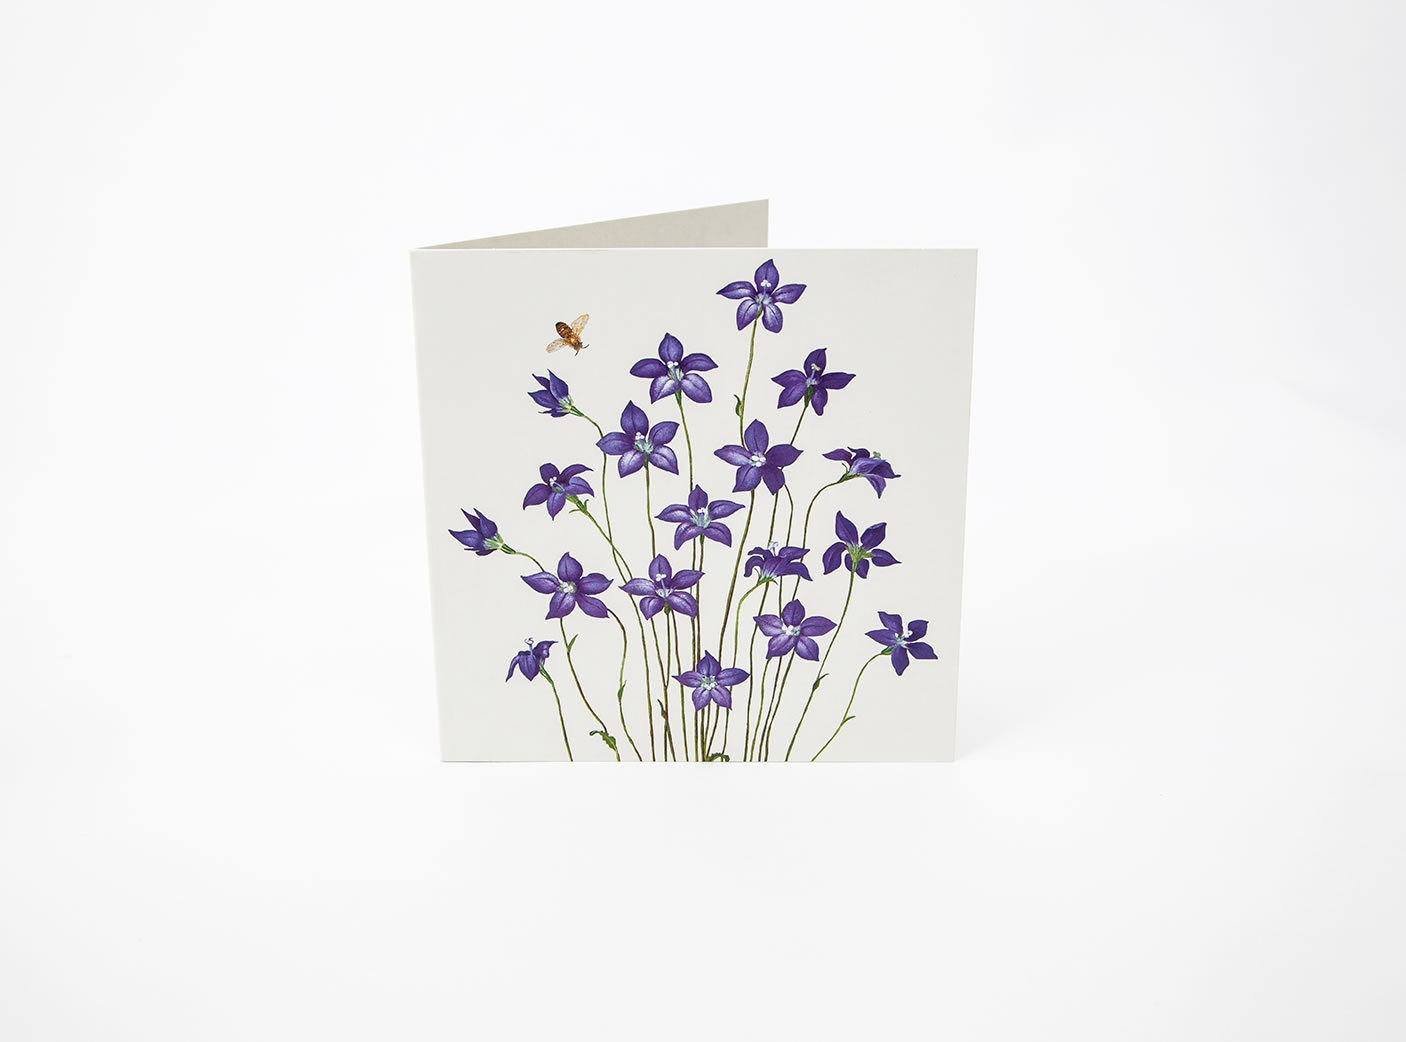 Bluebell - Floral Emblem of ACT